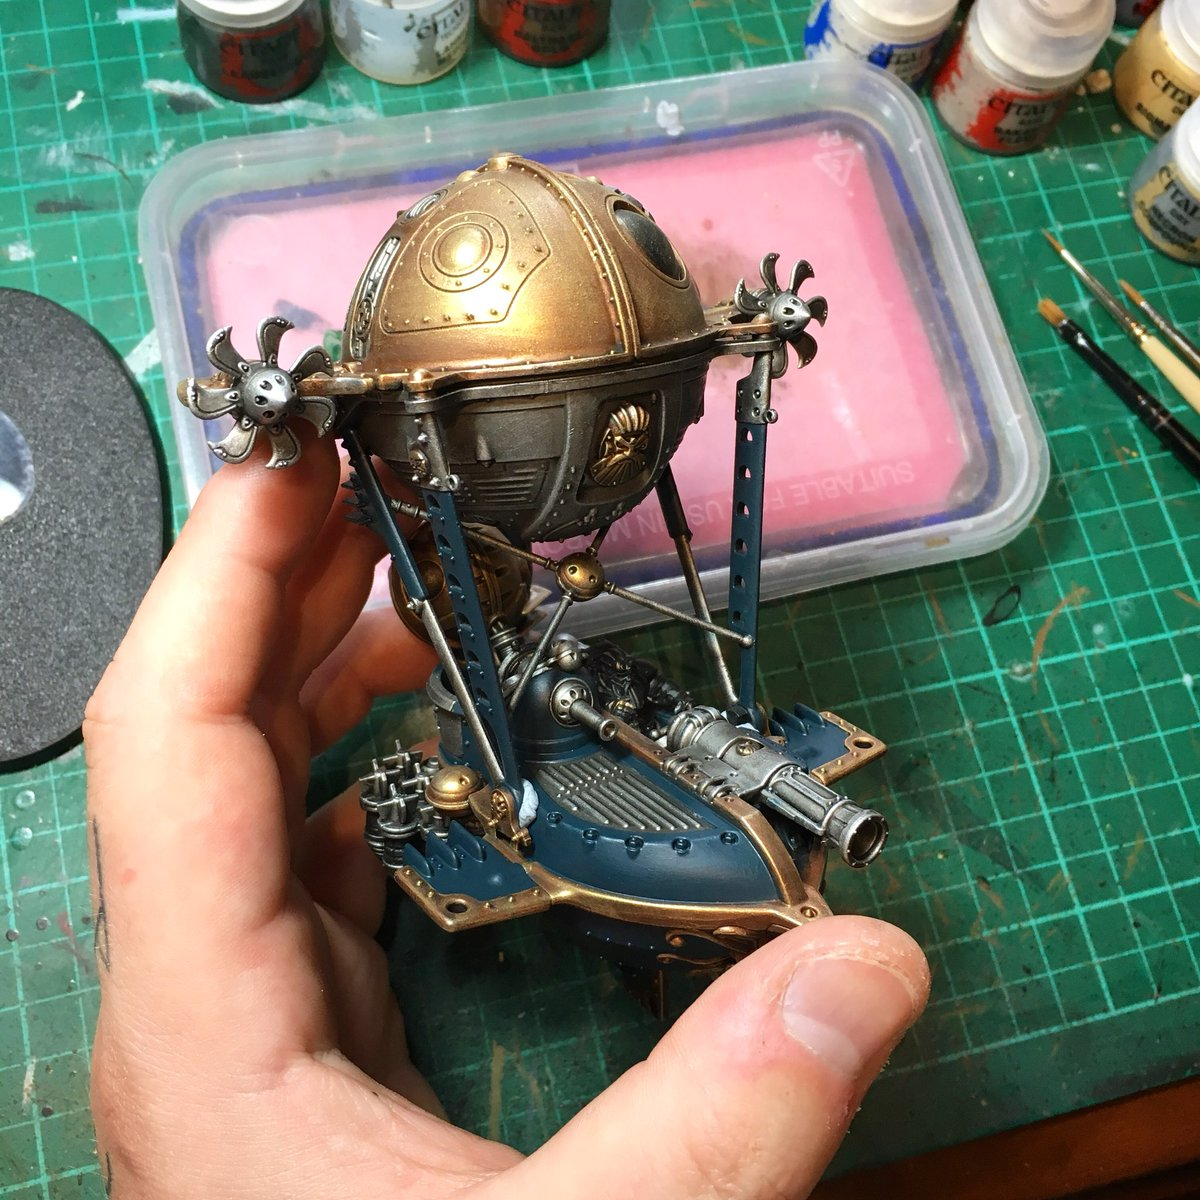 #Geek 🤓 Awesome of the Day: #Steampunk ⚙️ #Warhammer #AgeofSigmar #Kharadron Boat ⛵ by Miniature Painter @sloane_paints #SamaGeek #SamaToys